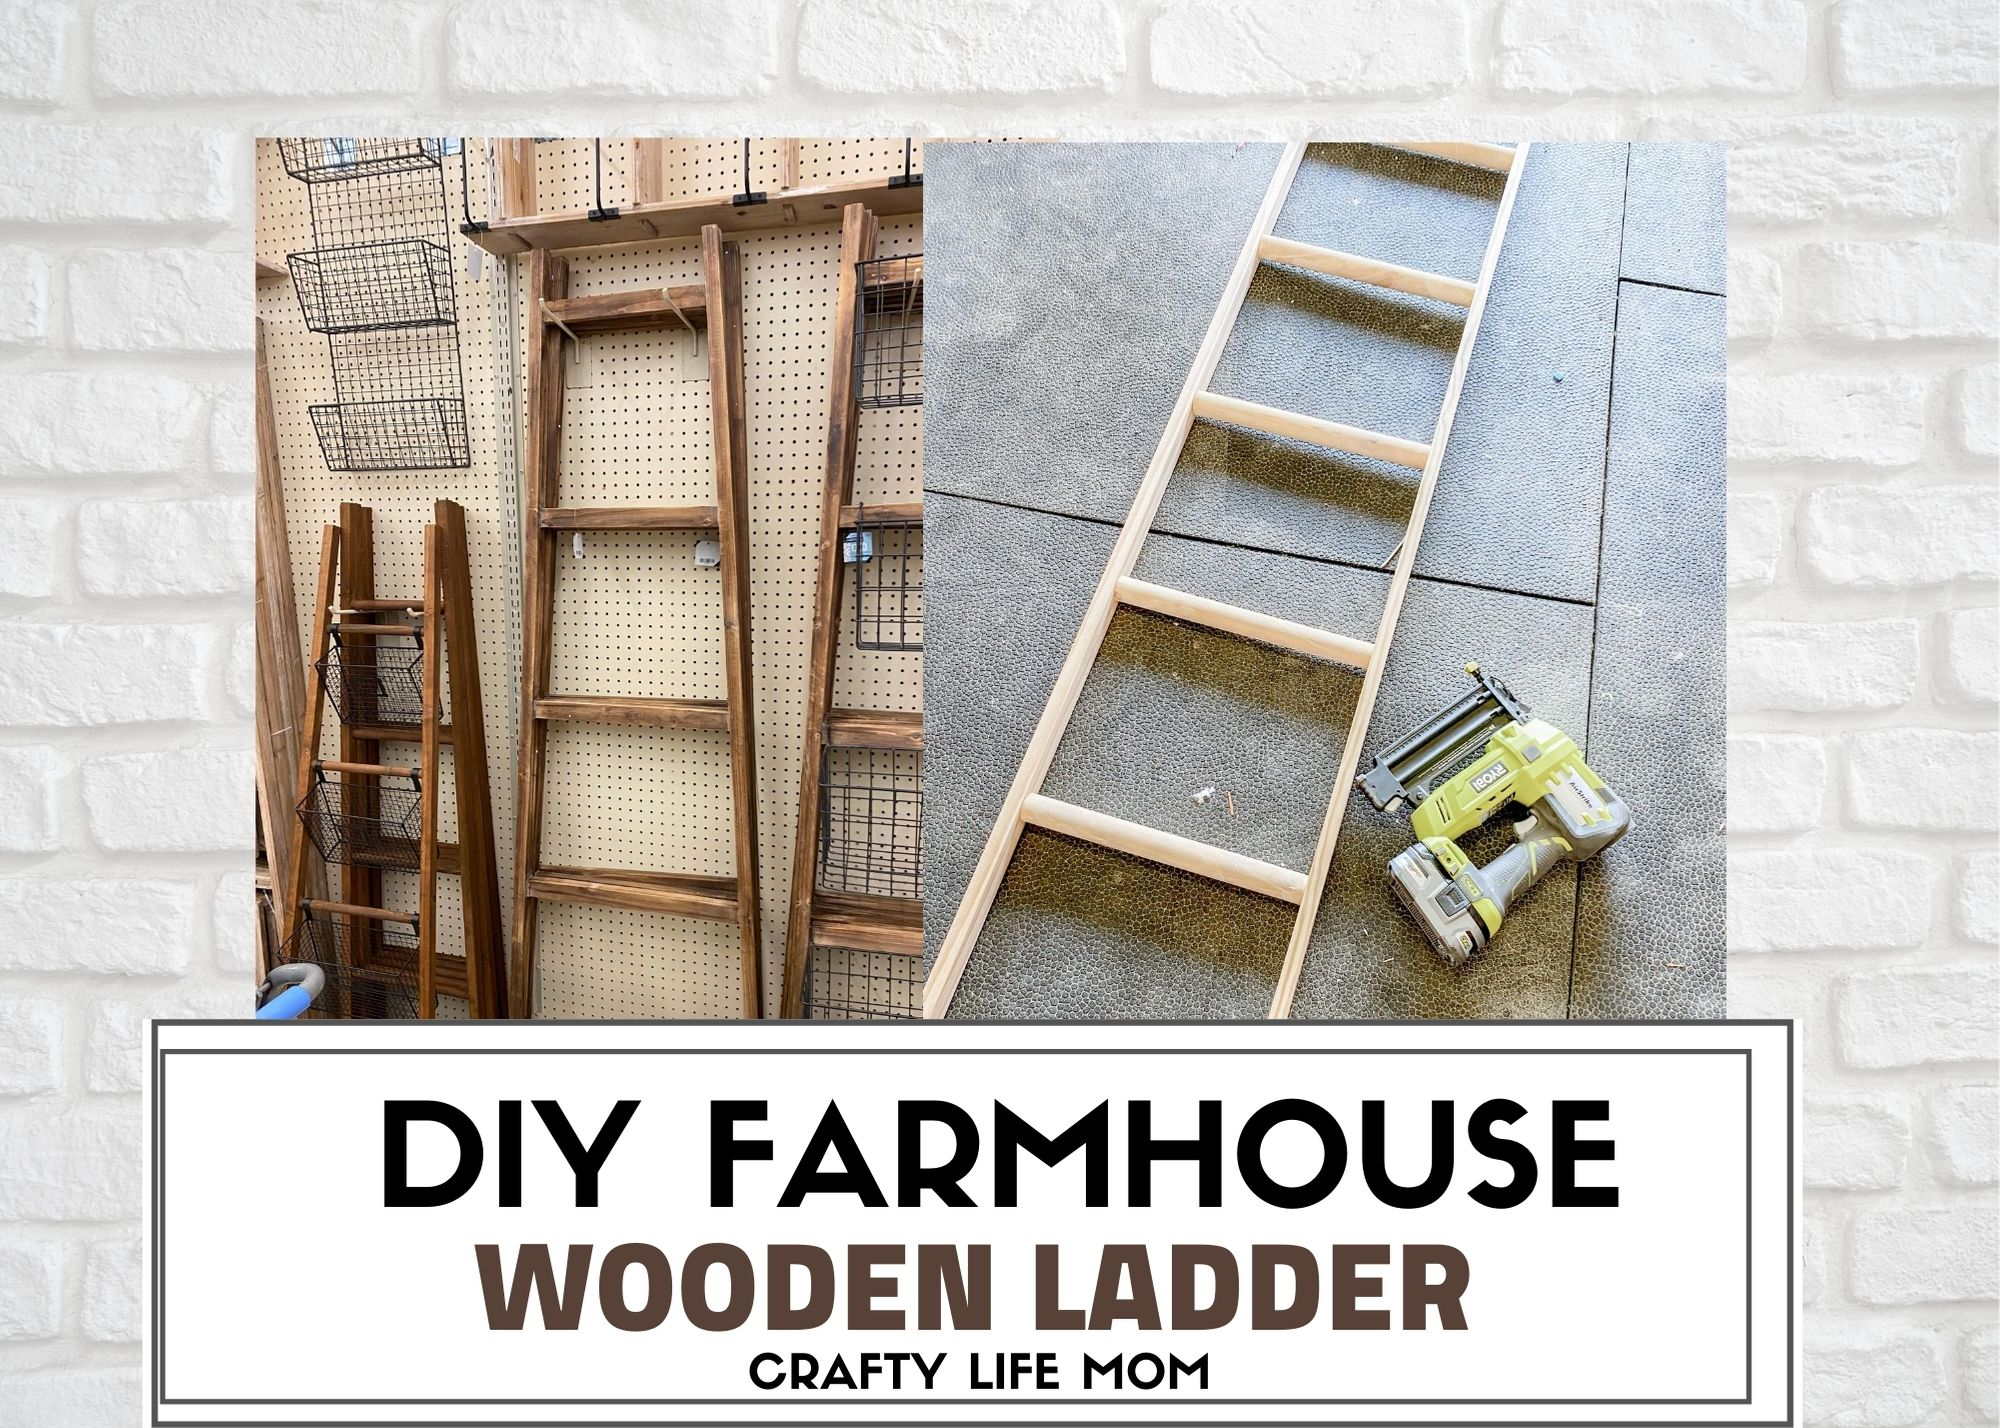 Create a Wood Farmhouse Ladder using this DIY tutorial. It is very simple and easy to make without the hefty price tag from a home decor store. I show you how I used an old curtain rod and a few pieces of wood trim to make this Wood Farmhouse Ladder.